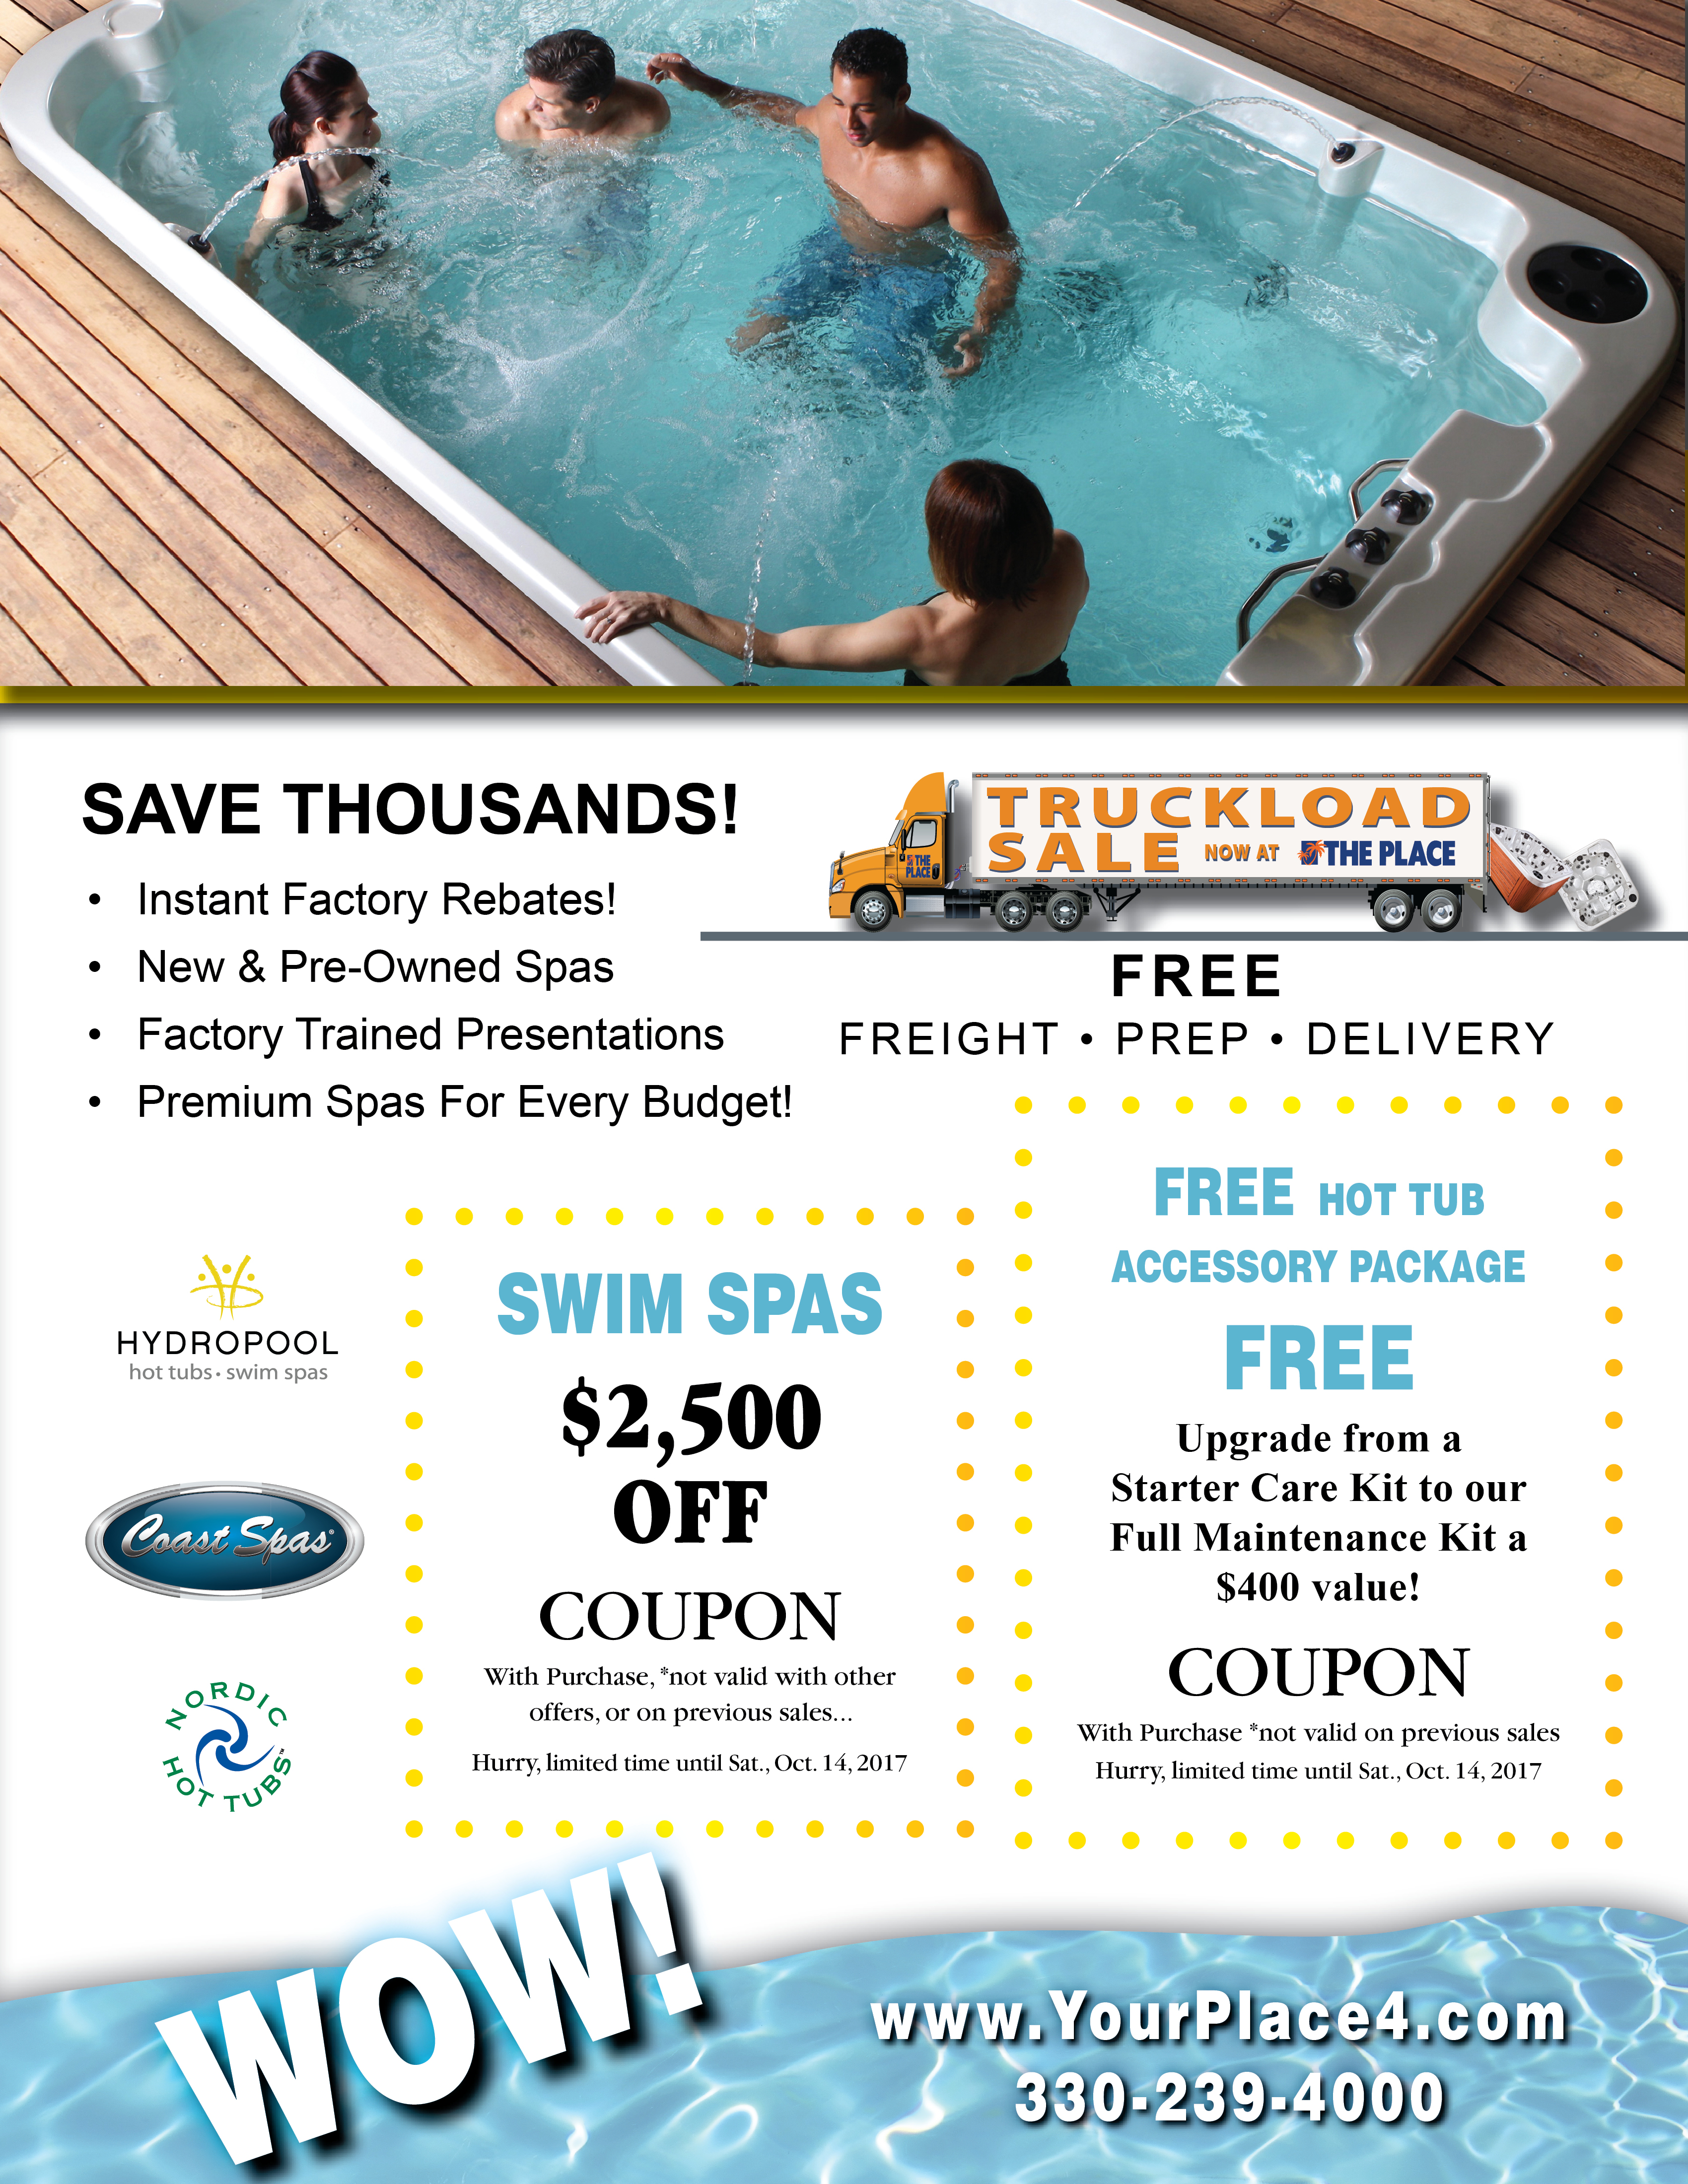 Truckload Sale! Coupons - The Place